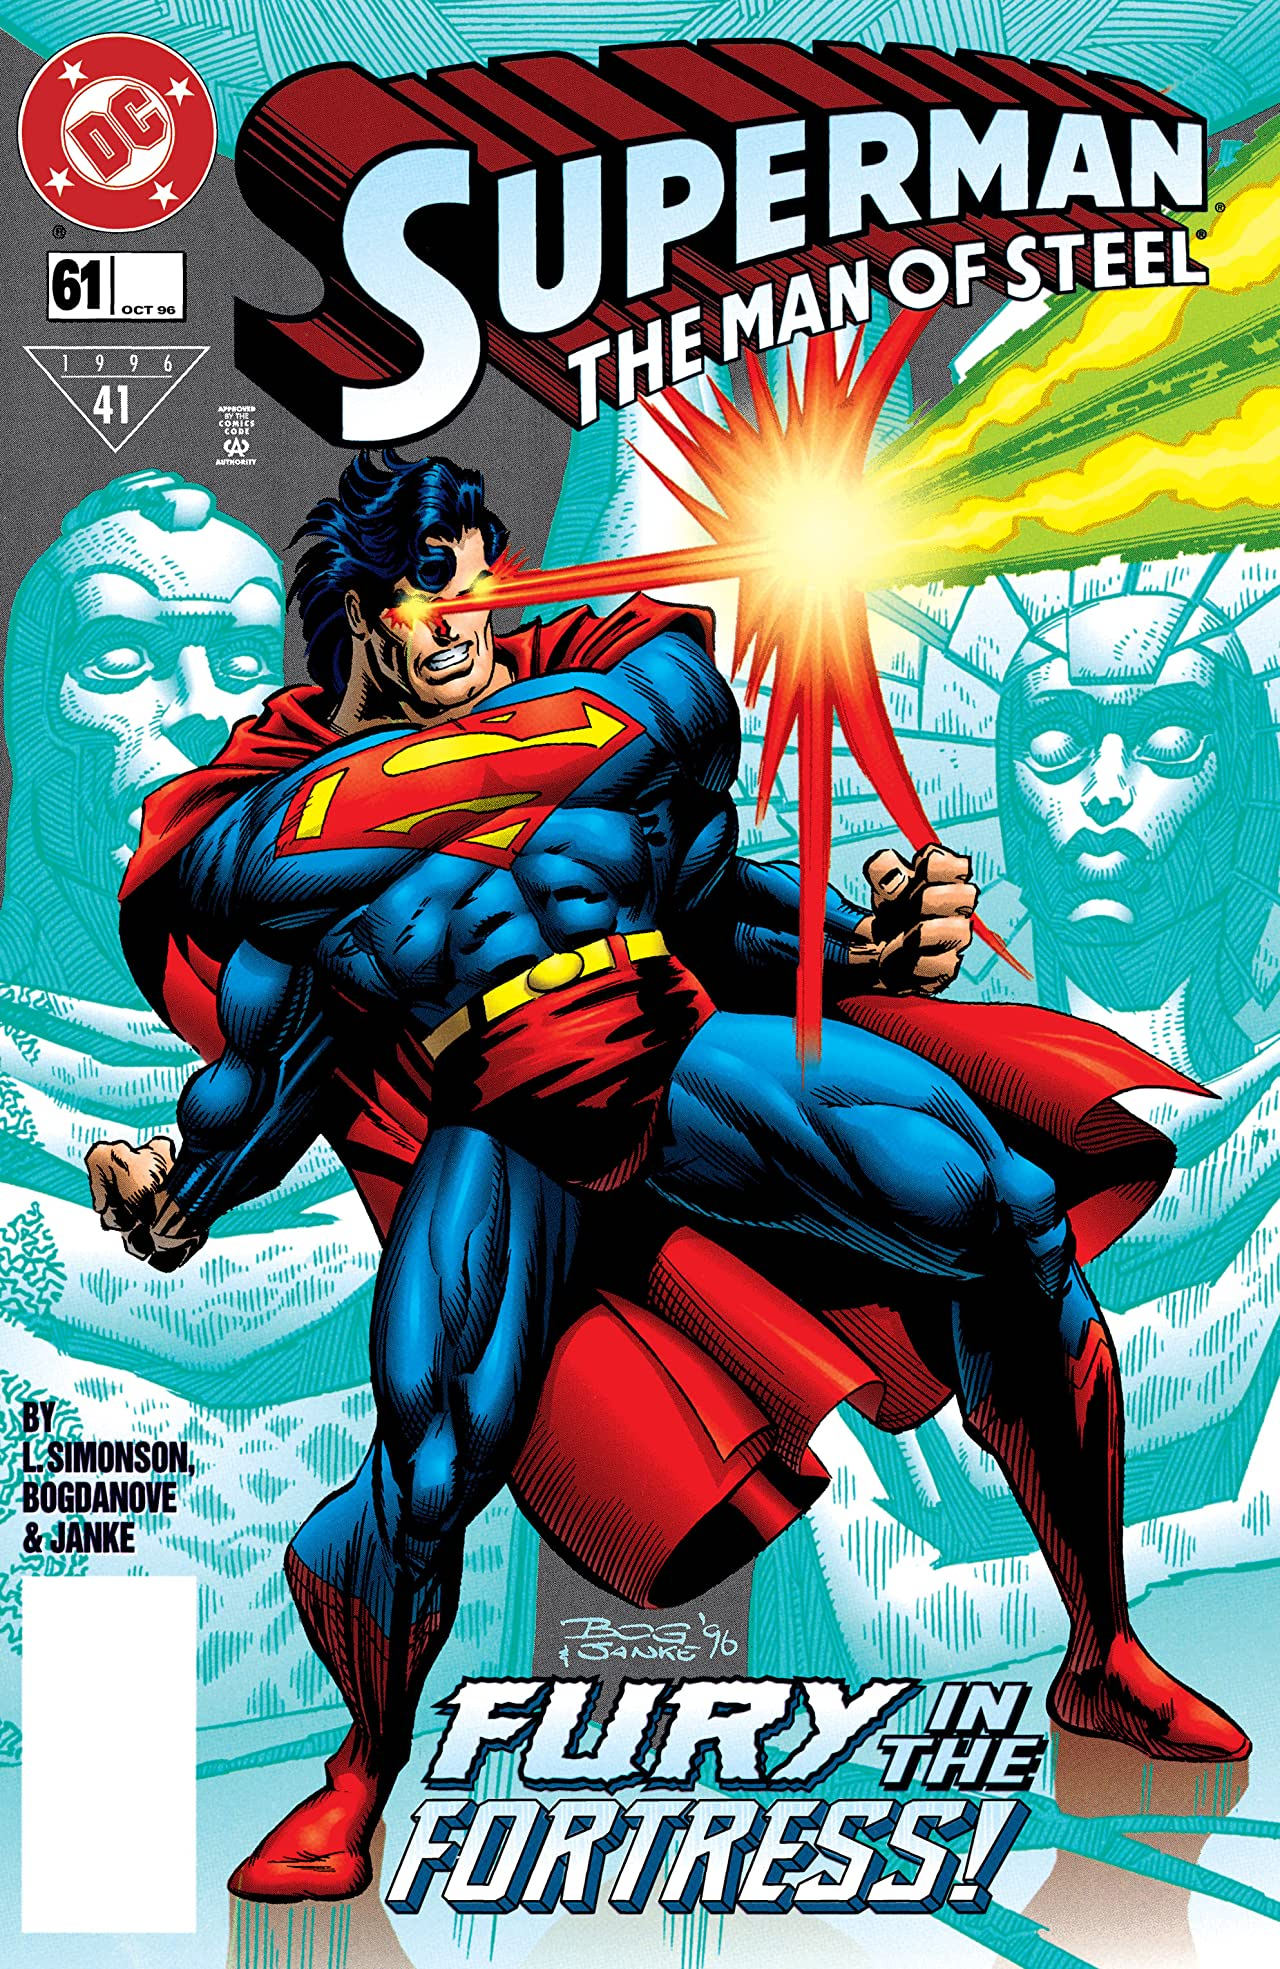 Superman: The Man of Steel (1991-2003) #61